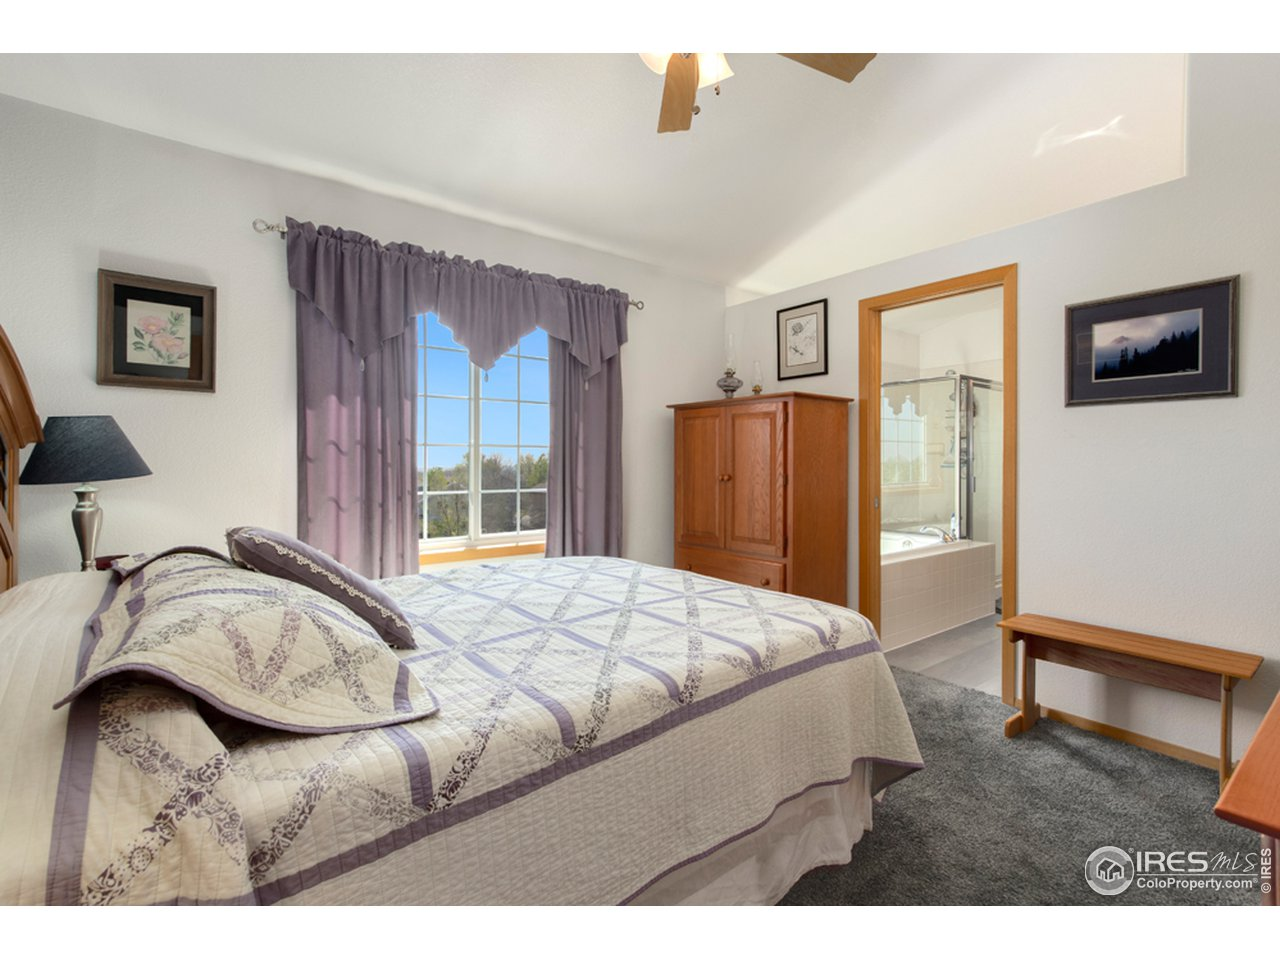 Master Bedroom with Open Space Views